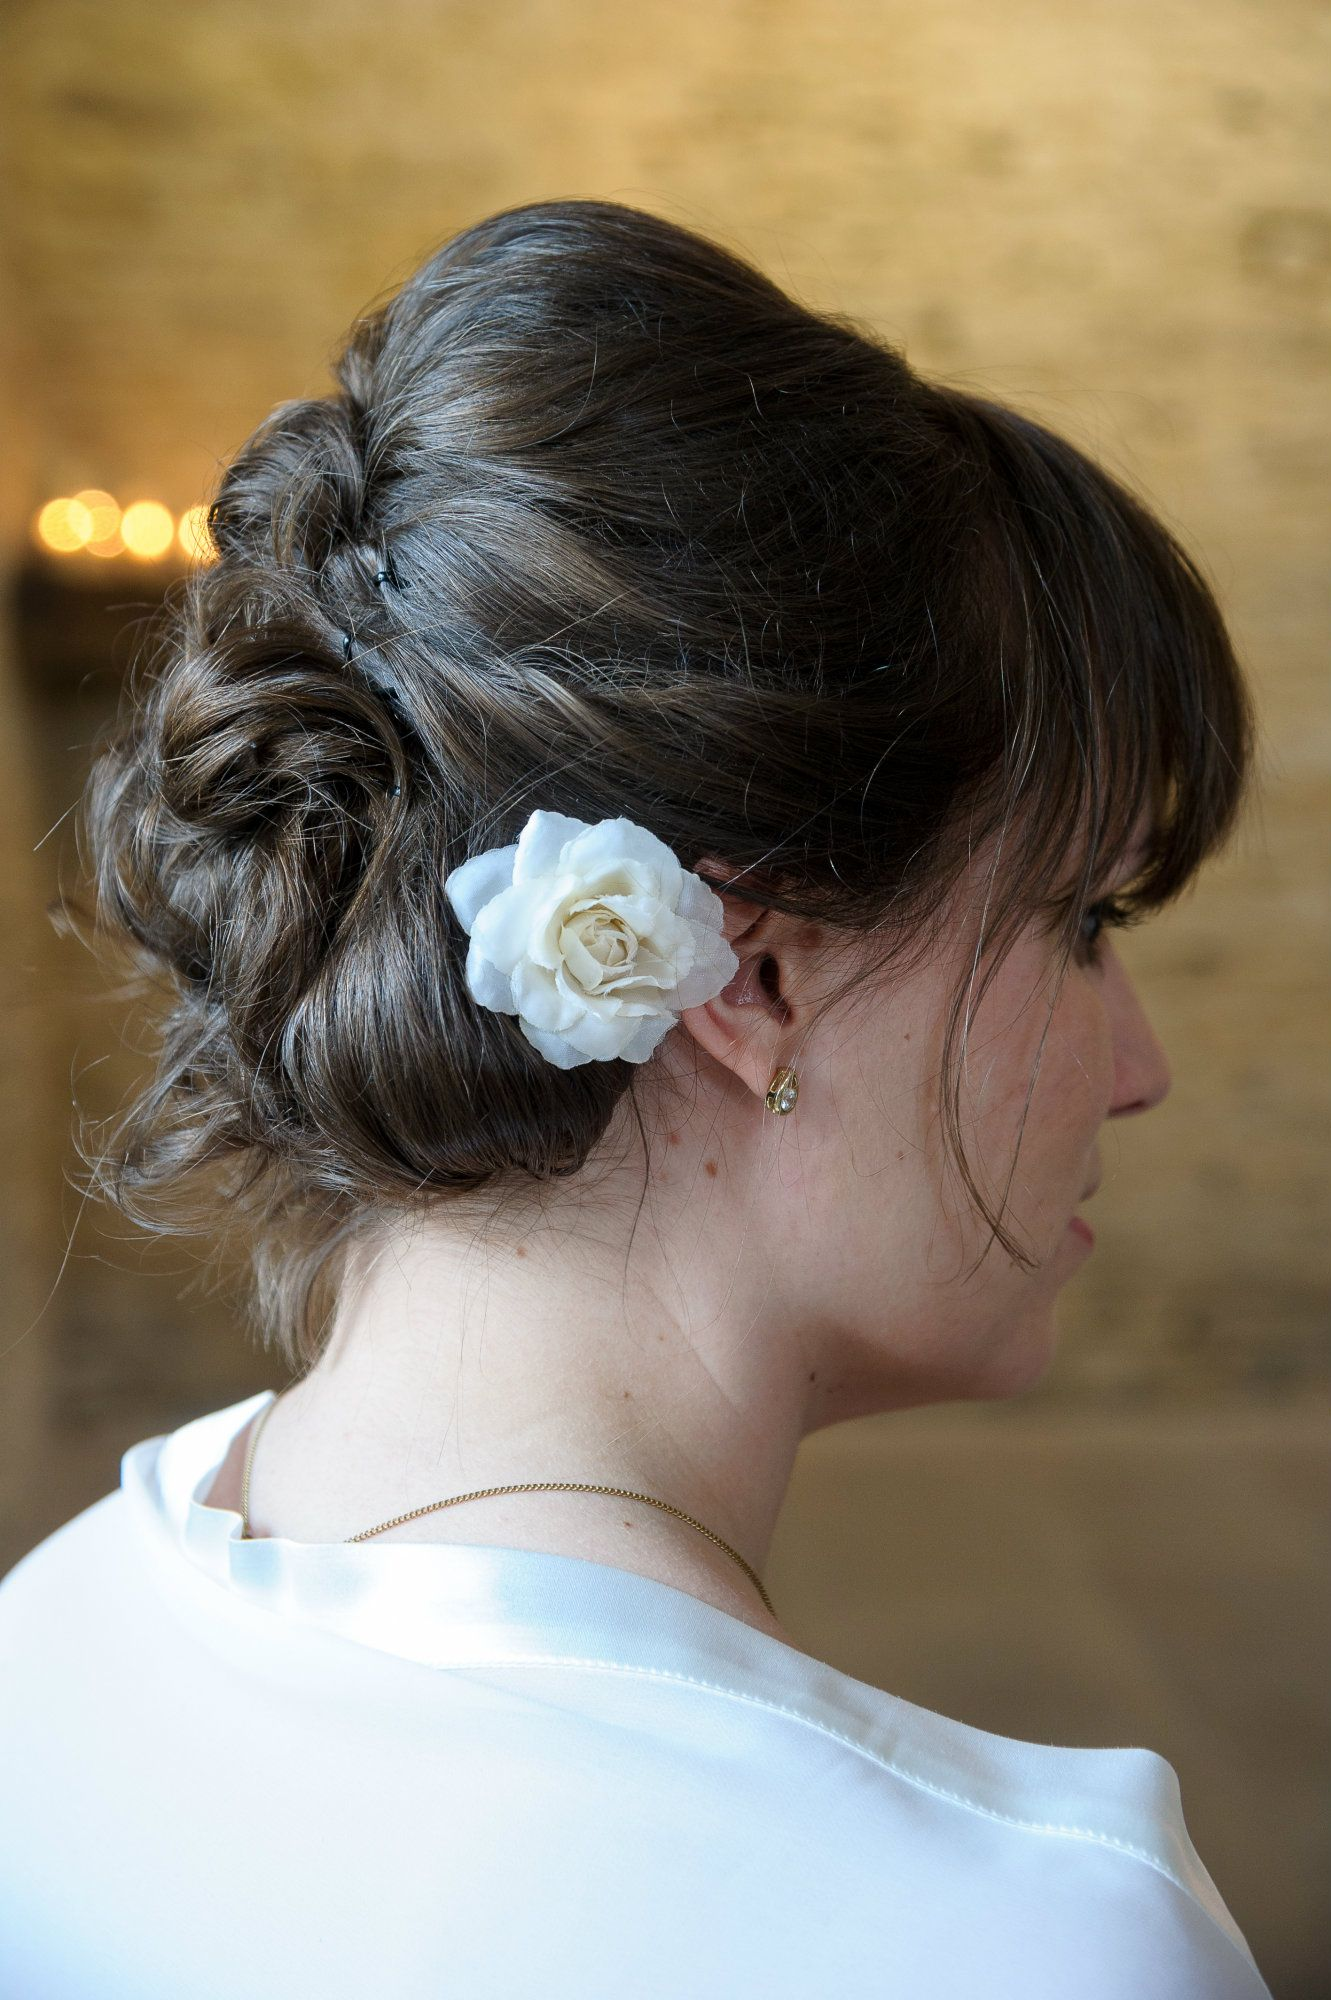 Cheltenham-Northleach-mobile-wedding hairdresser-LREN-2